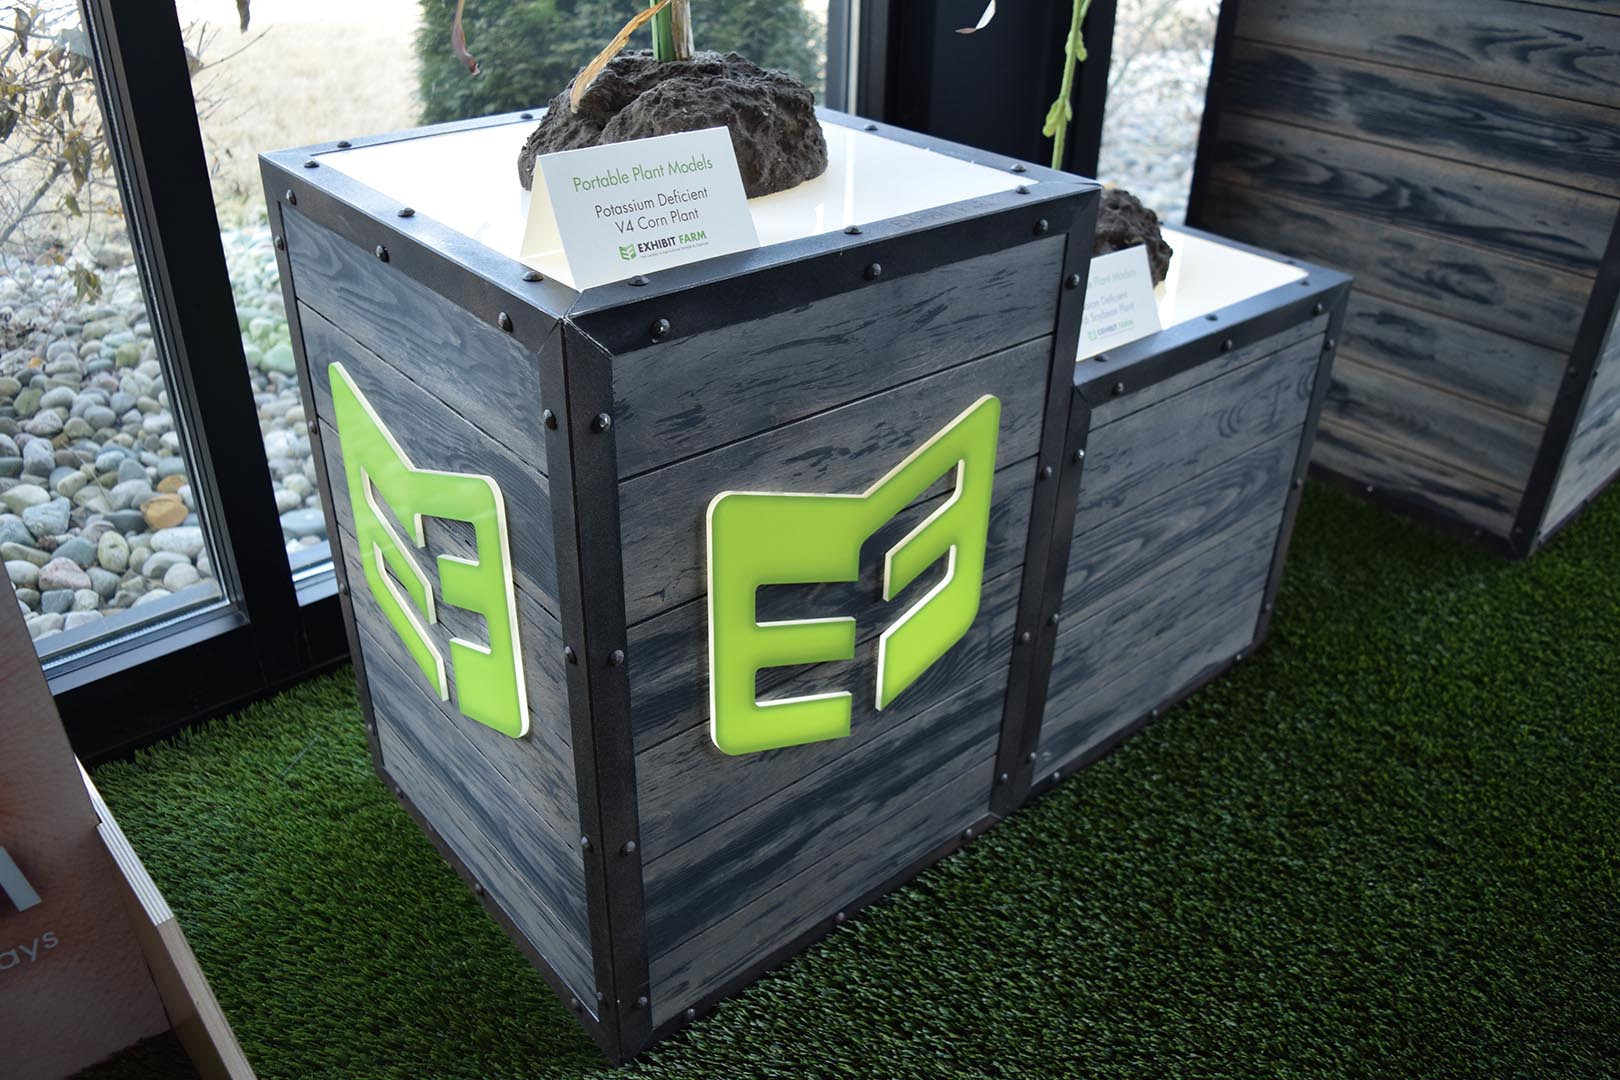 Exhibit Farm LED-Lit Display Crates